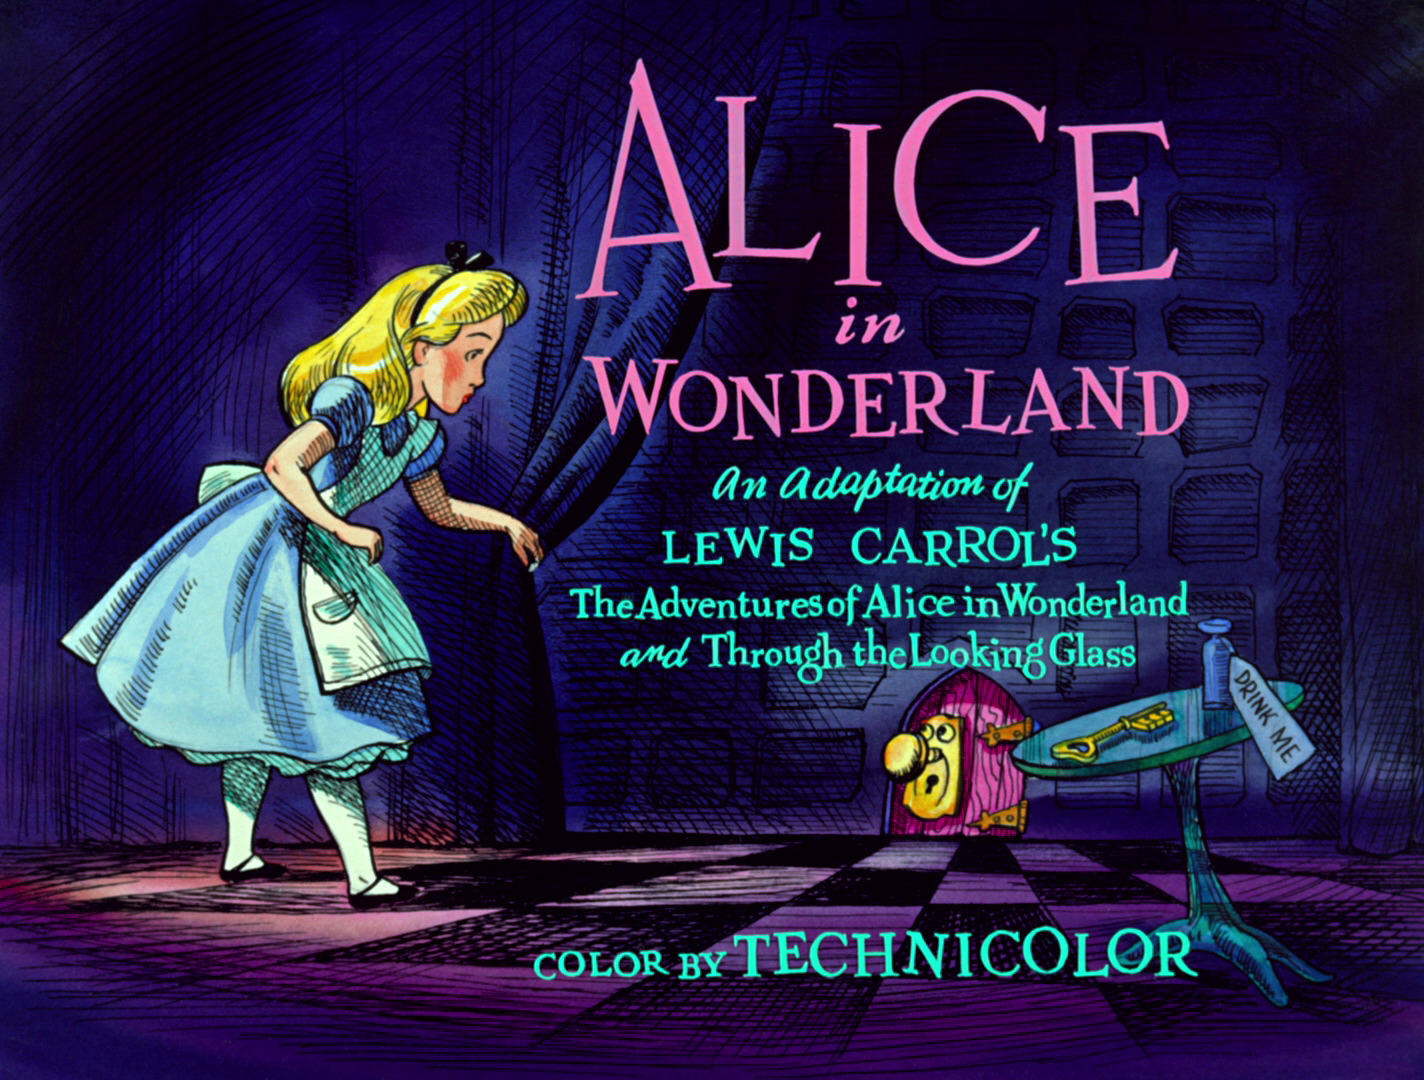 alice in wonderland movie download in hindi 1080p